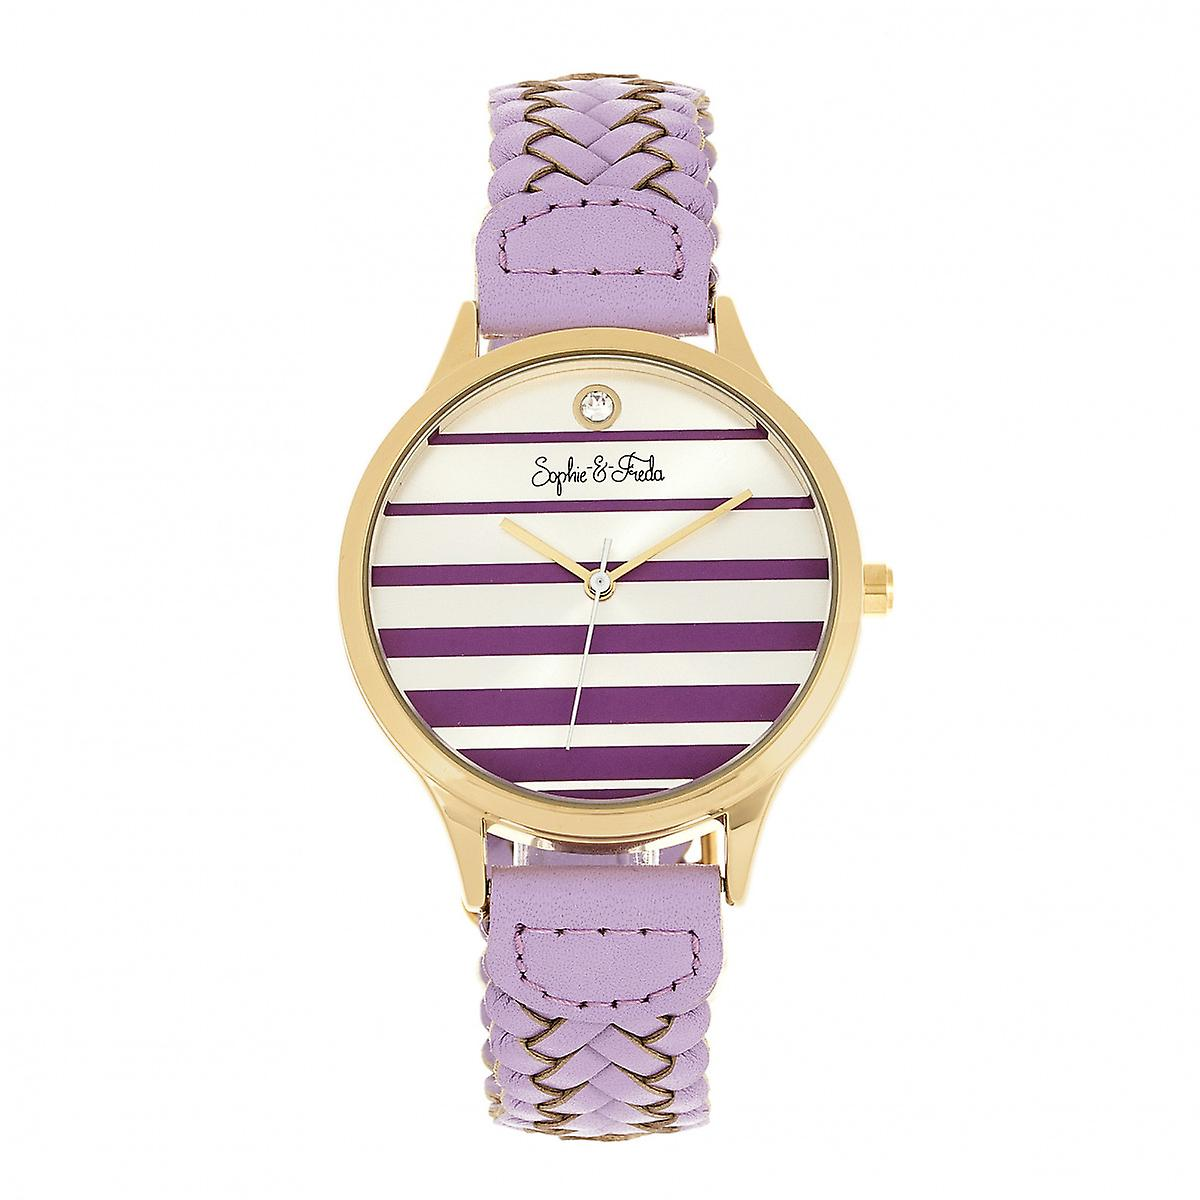 Sophie & Freda Tucson Leather-Band Watch w/Swarovski Crystals - Gold/Lavender